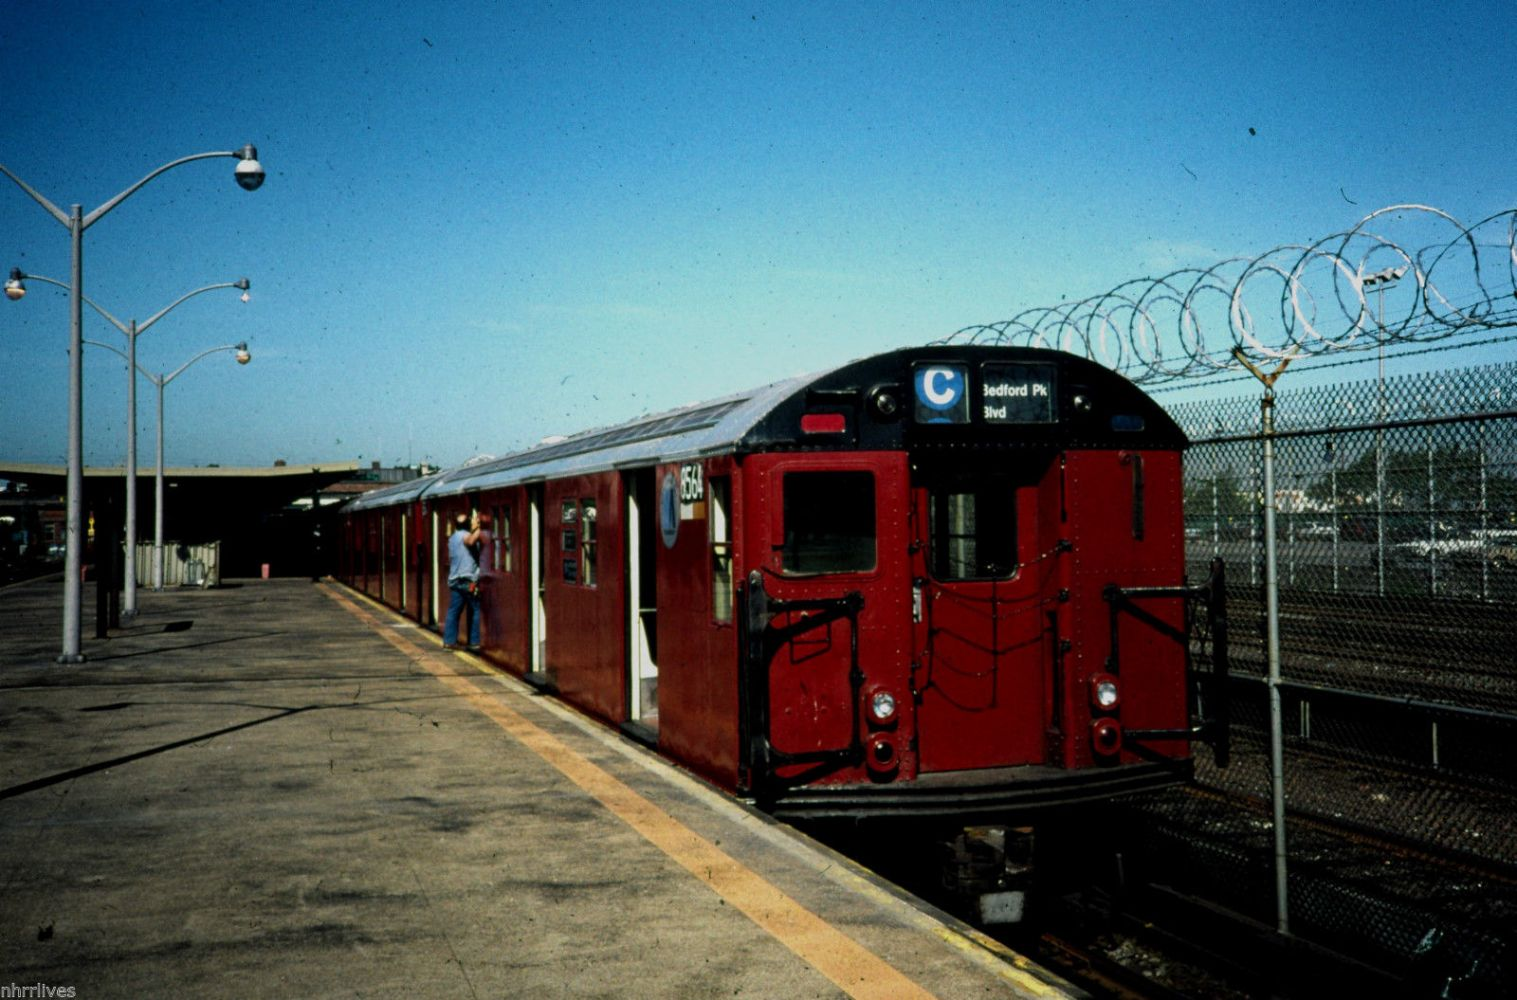 NYC SUBWAY 5x7 PRINT R 30 #8564 AT ROCKAWAY PARK JUNE 1990